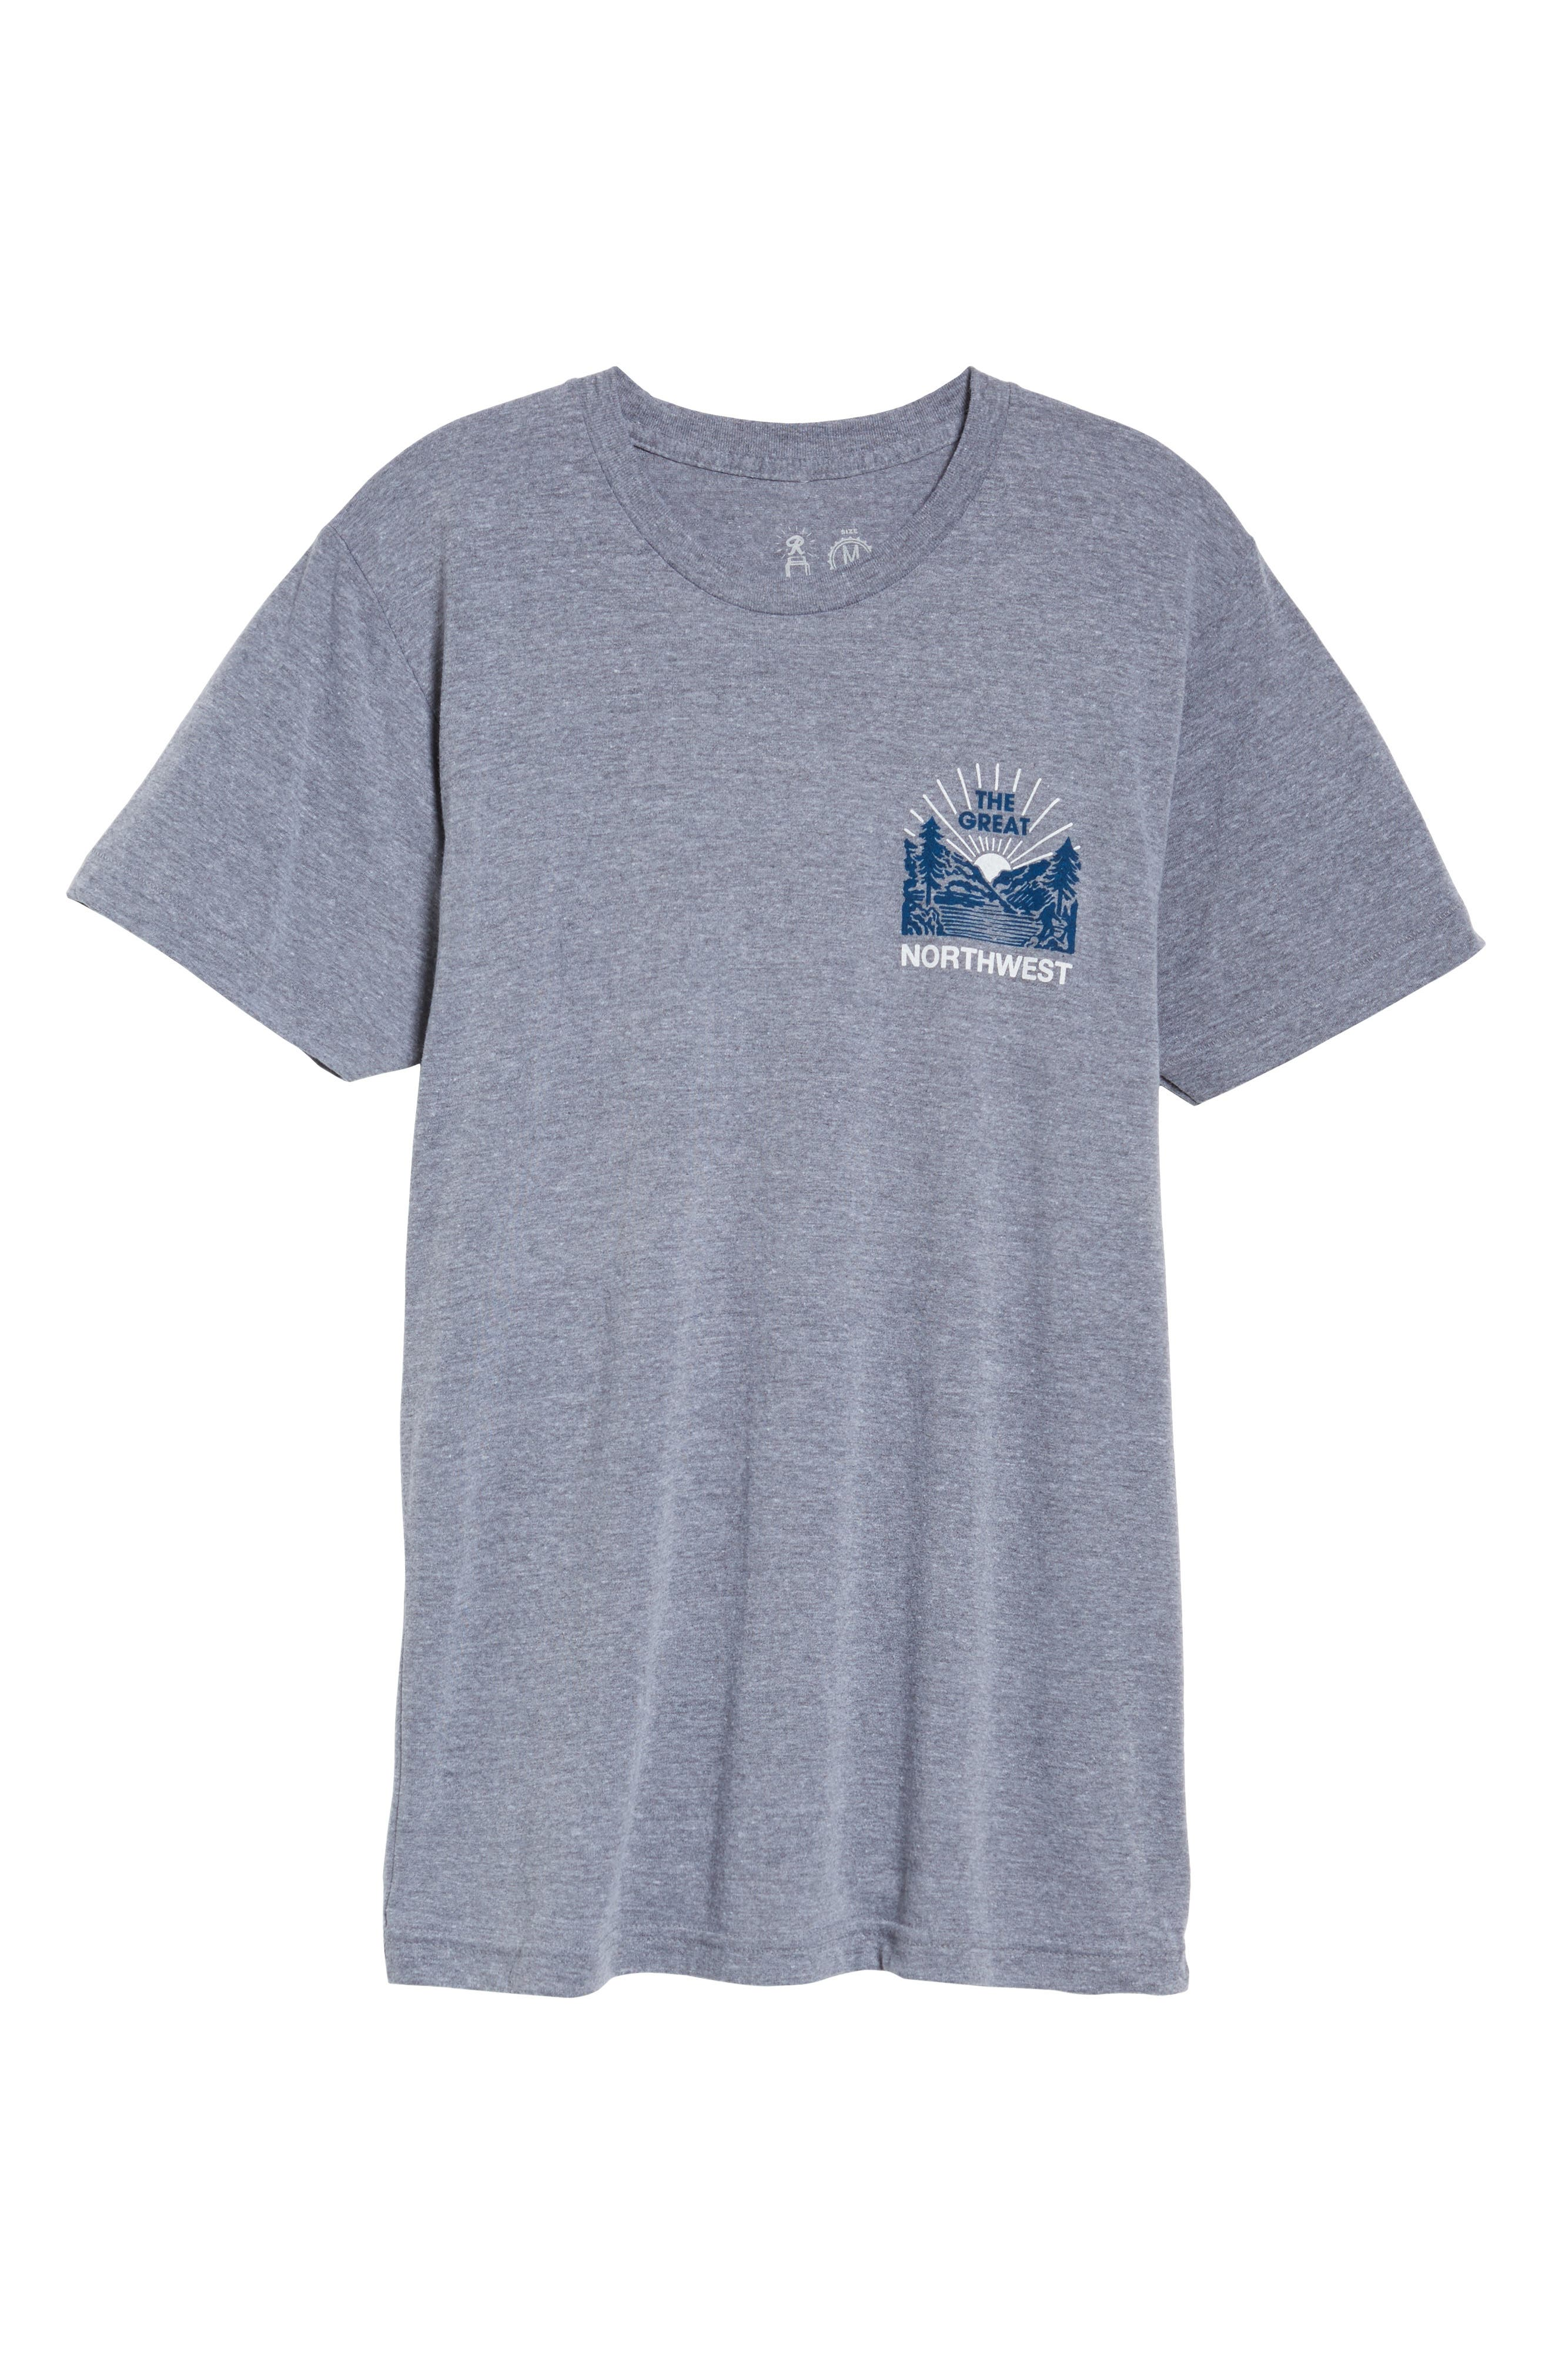 Squatch Valley 2 Graphic T-Shirt,                             Alternate thumbnail 6, color,                             070